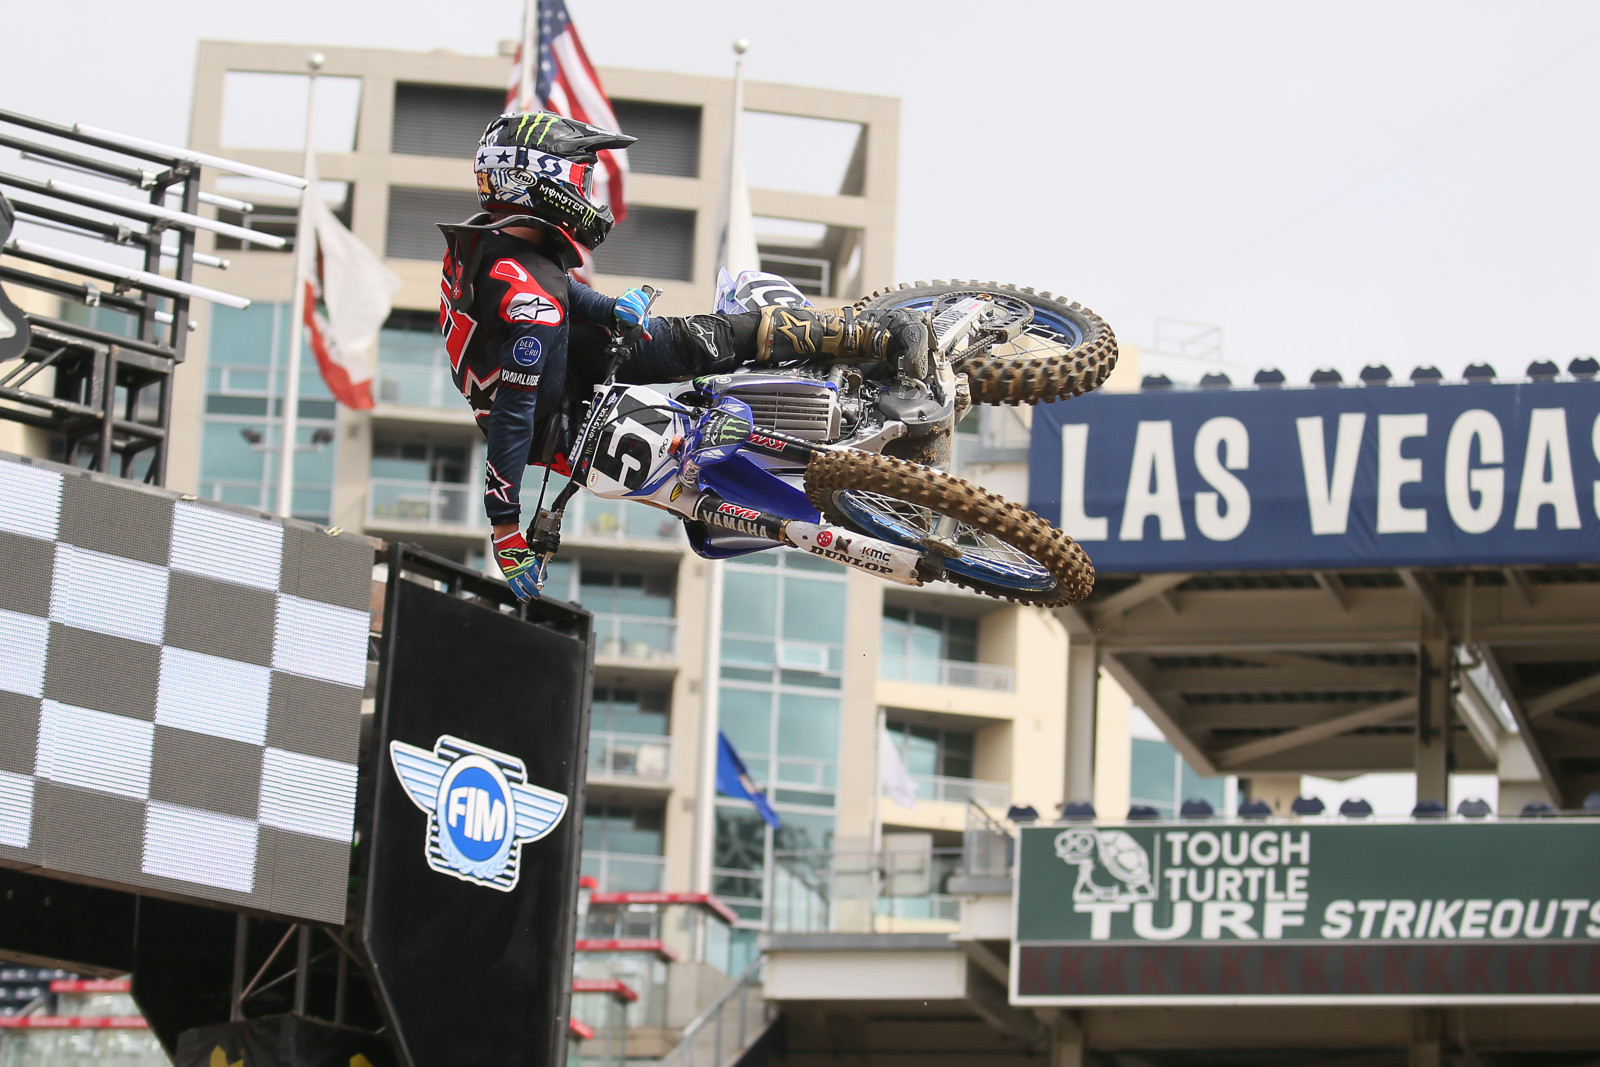 Justin Barcia getting twisted over the finish line jump.